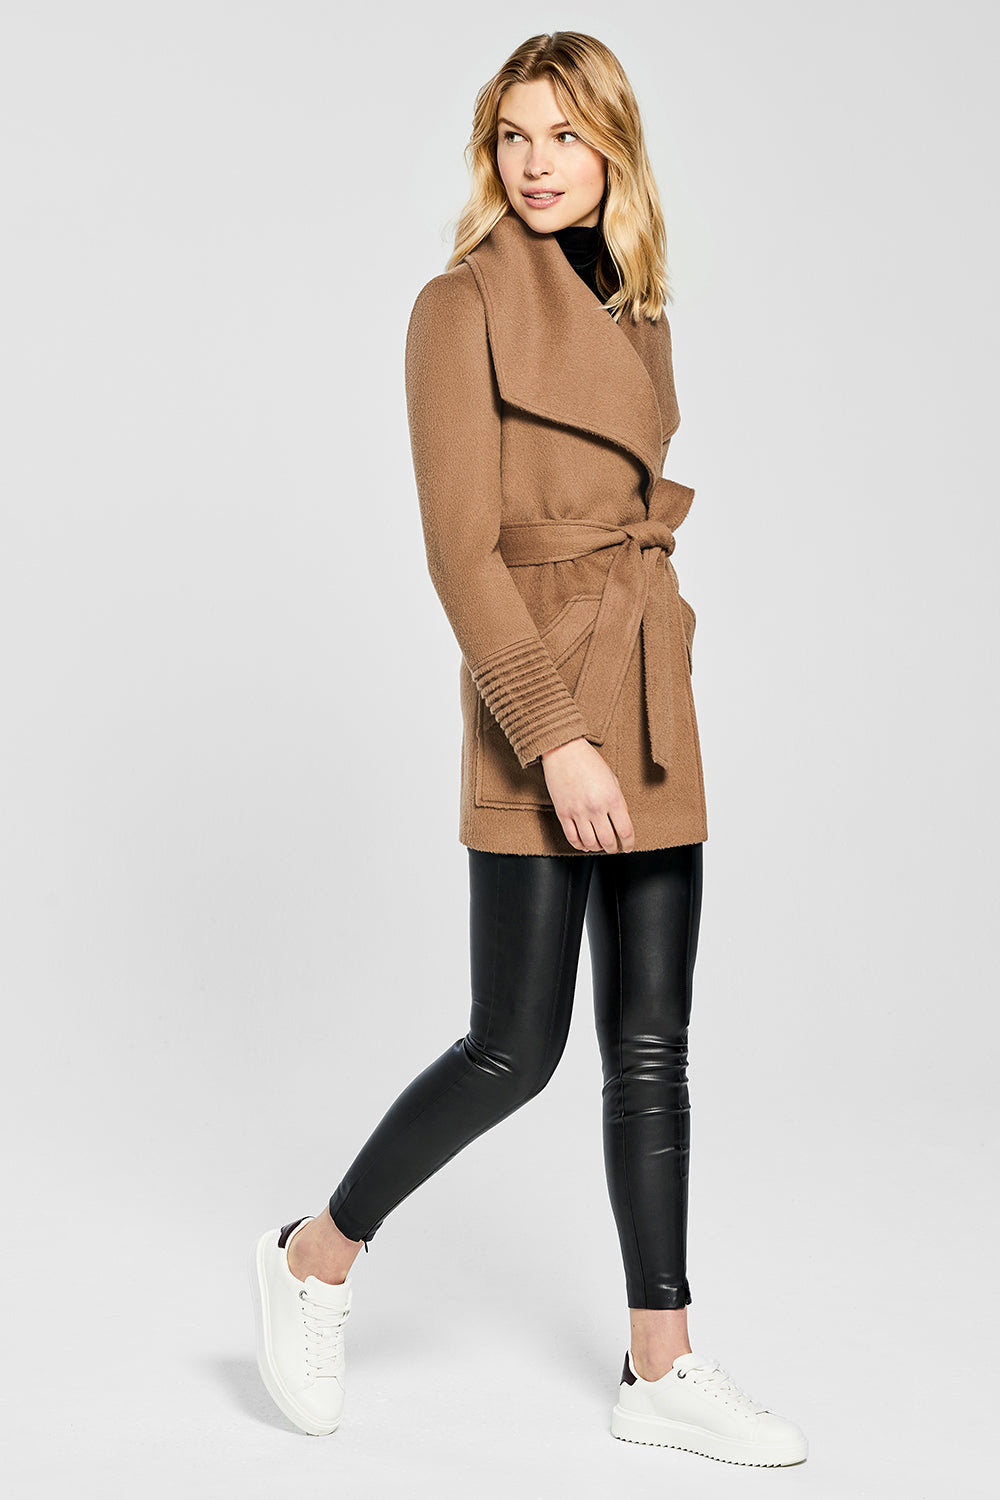 Sentaler Cropped Wide Collar Wrap Coat featured in Baby Alpaca and available in Dark Camel. Seen from side.